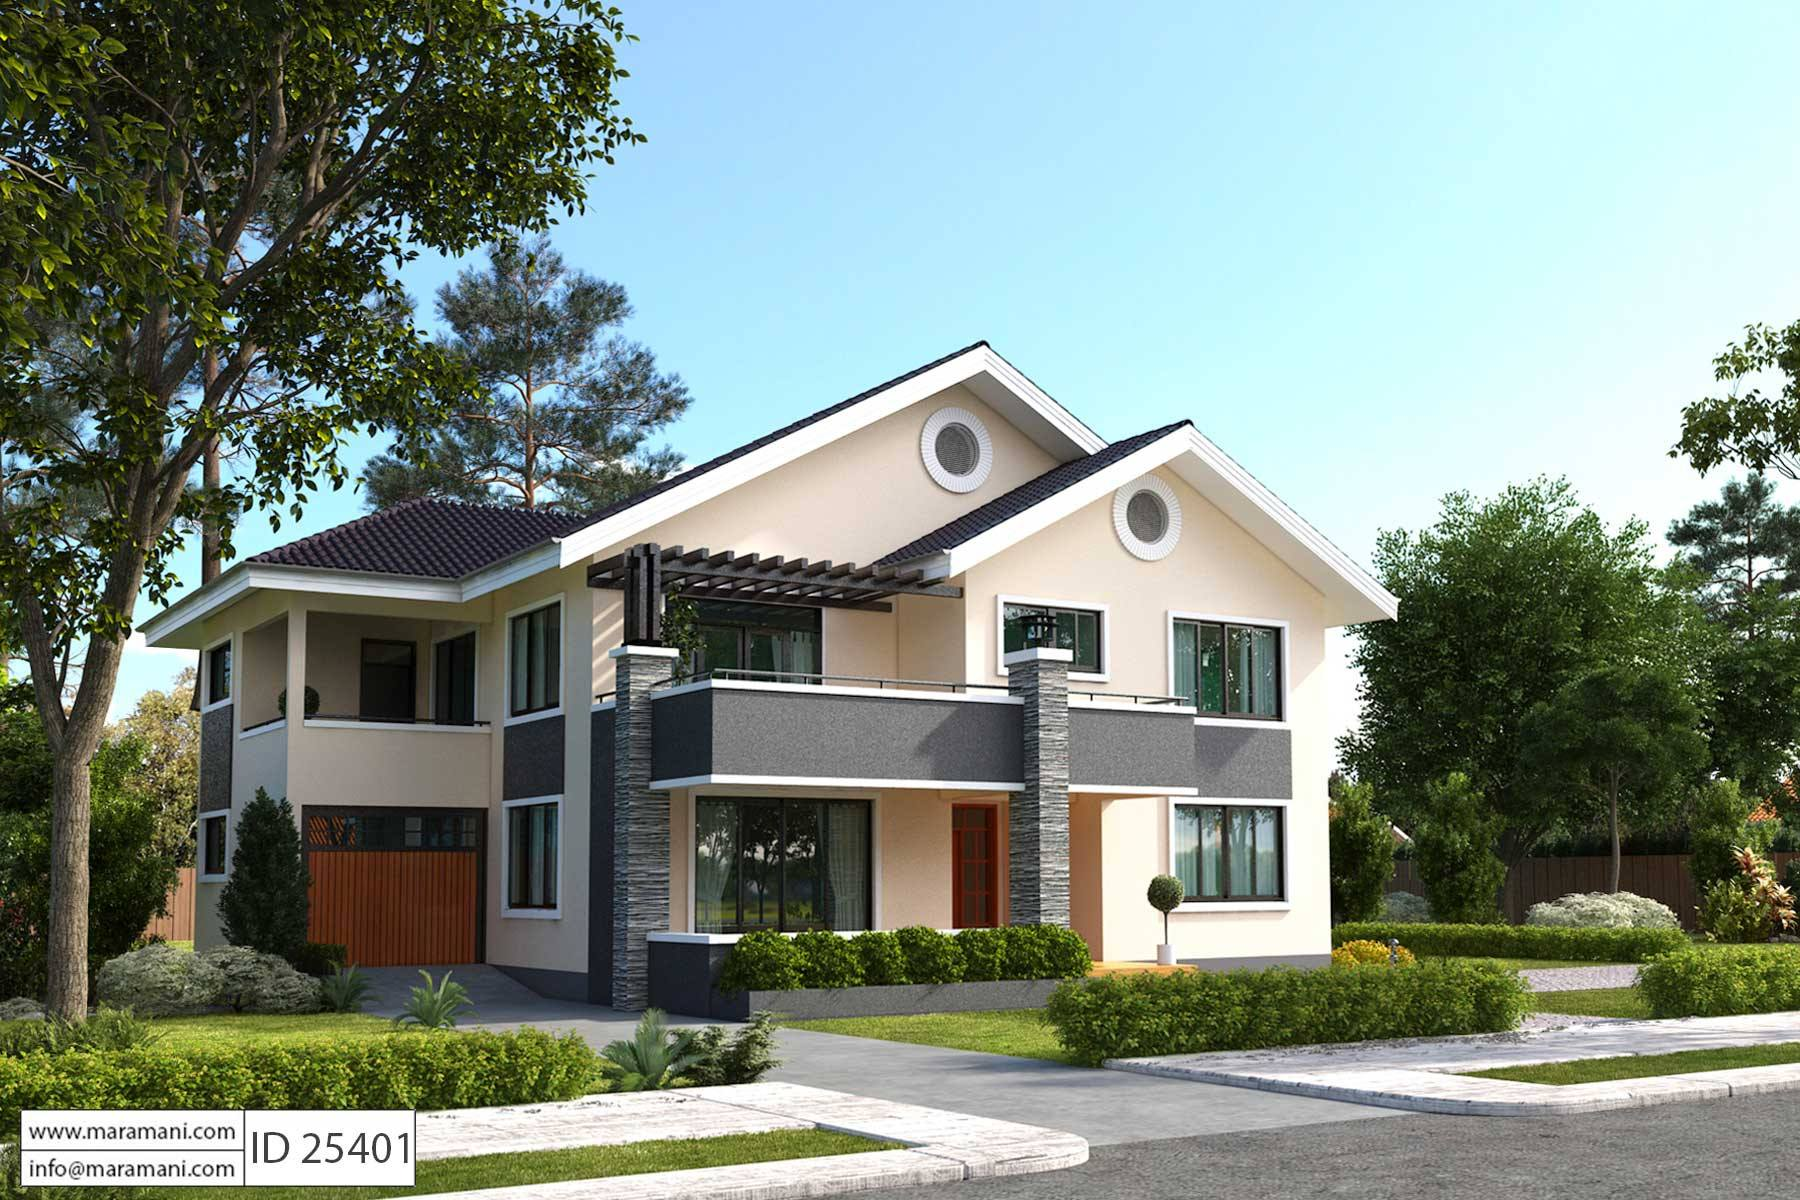 5 bedroom house plan id 25401 floor plans by maramani for 5 bedroom house designs